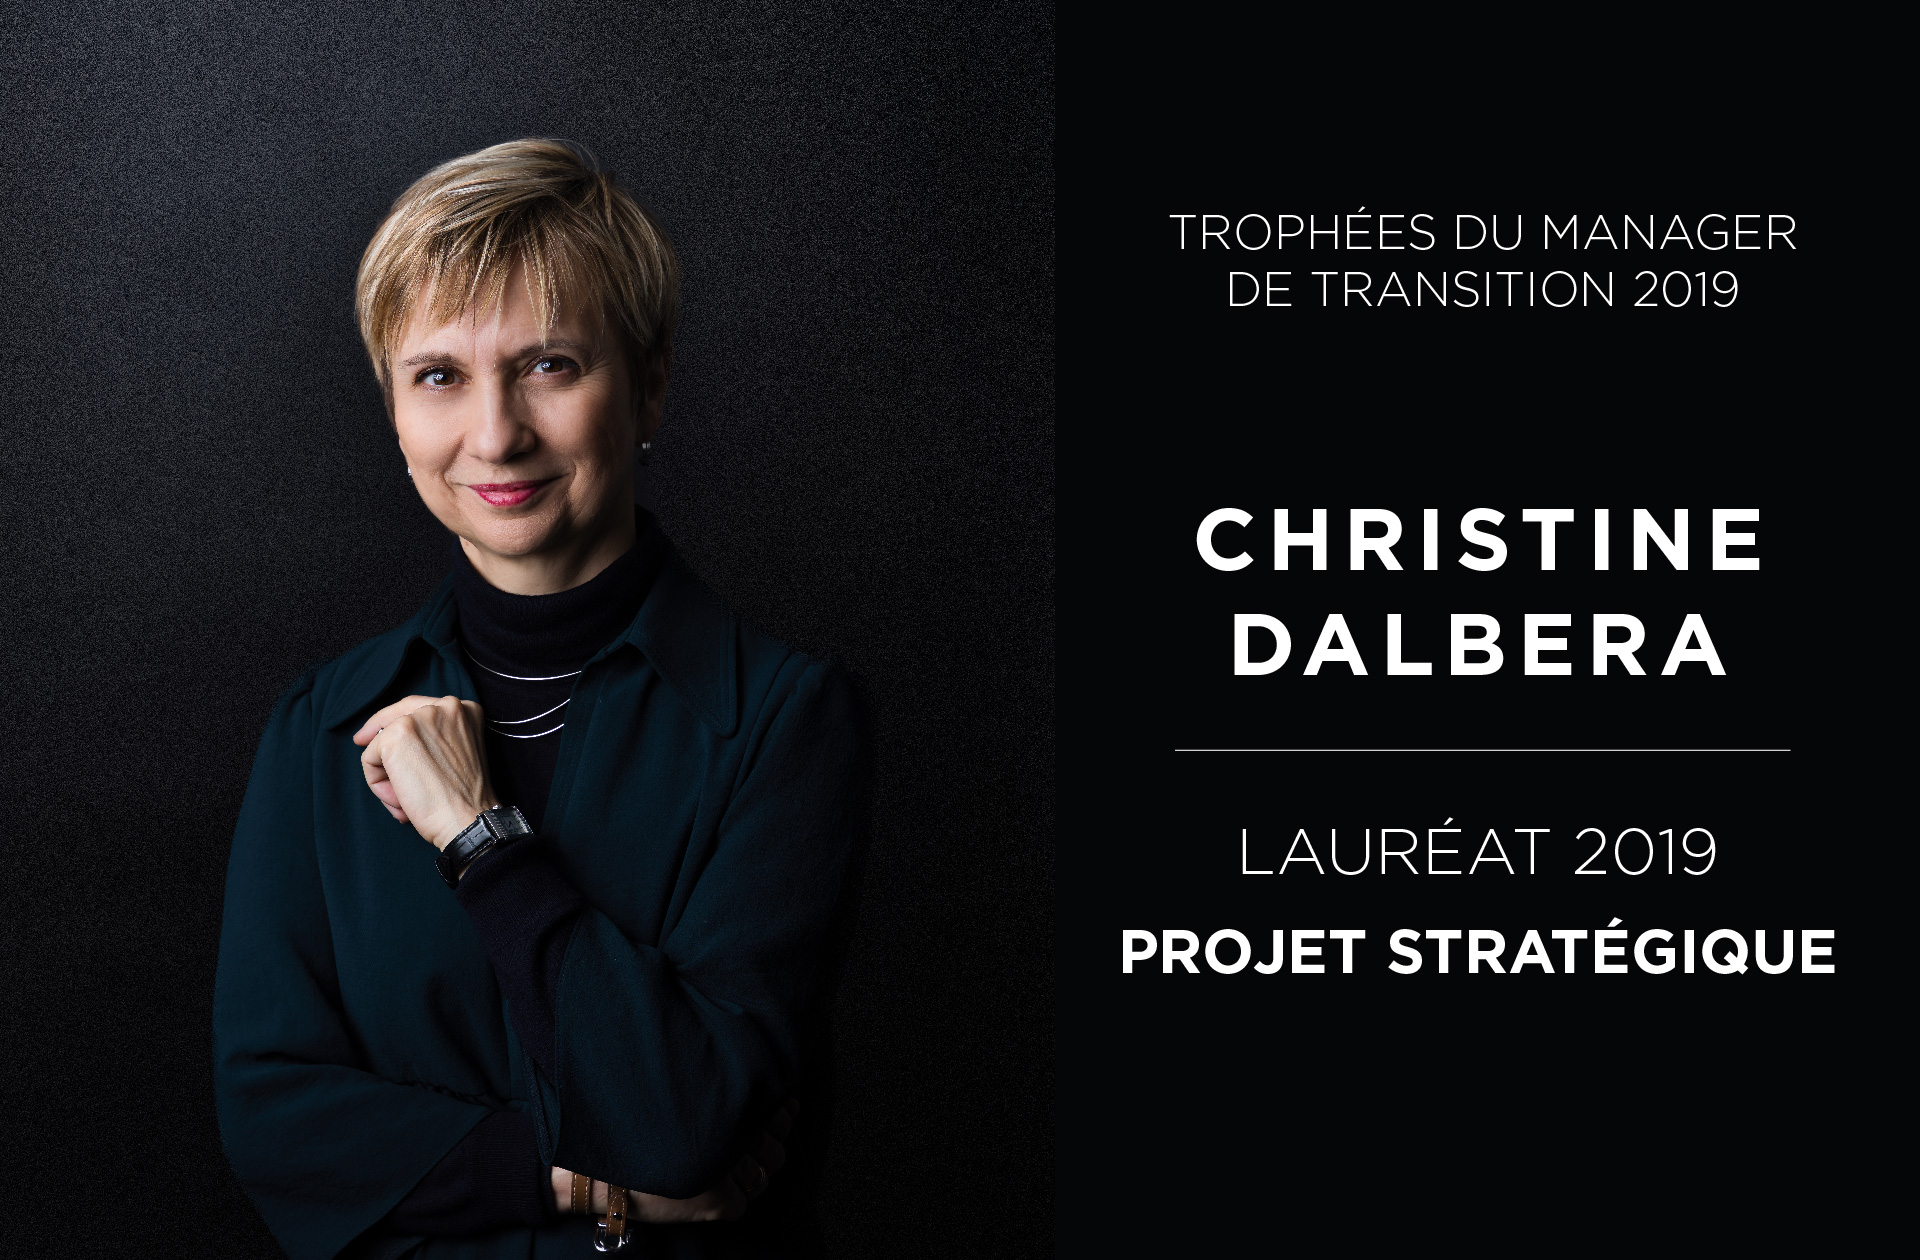 Portrait Christine Dalbera - Trophées du Manager de Transition 2019 - Valtus Management de transition